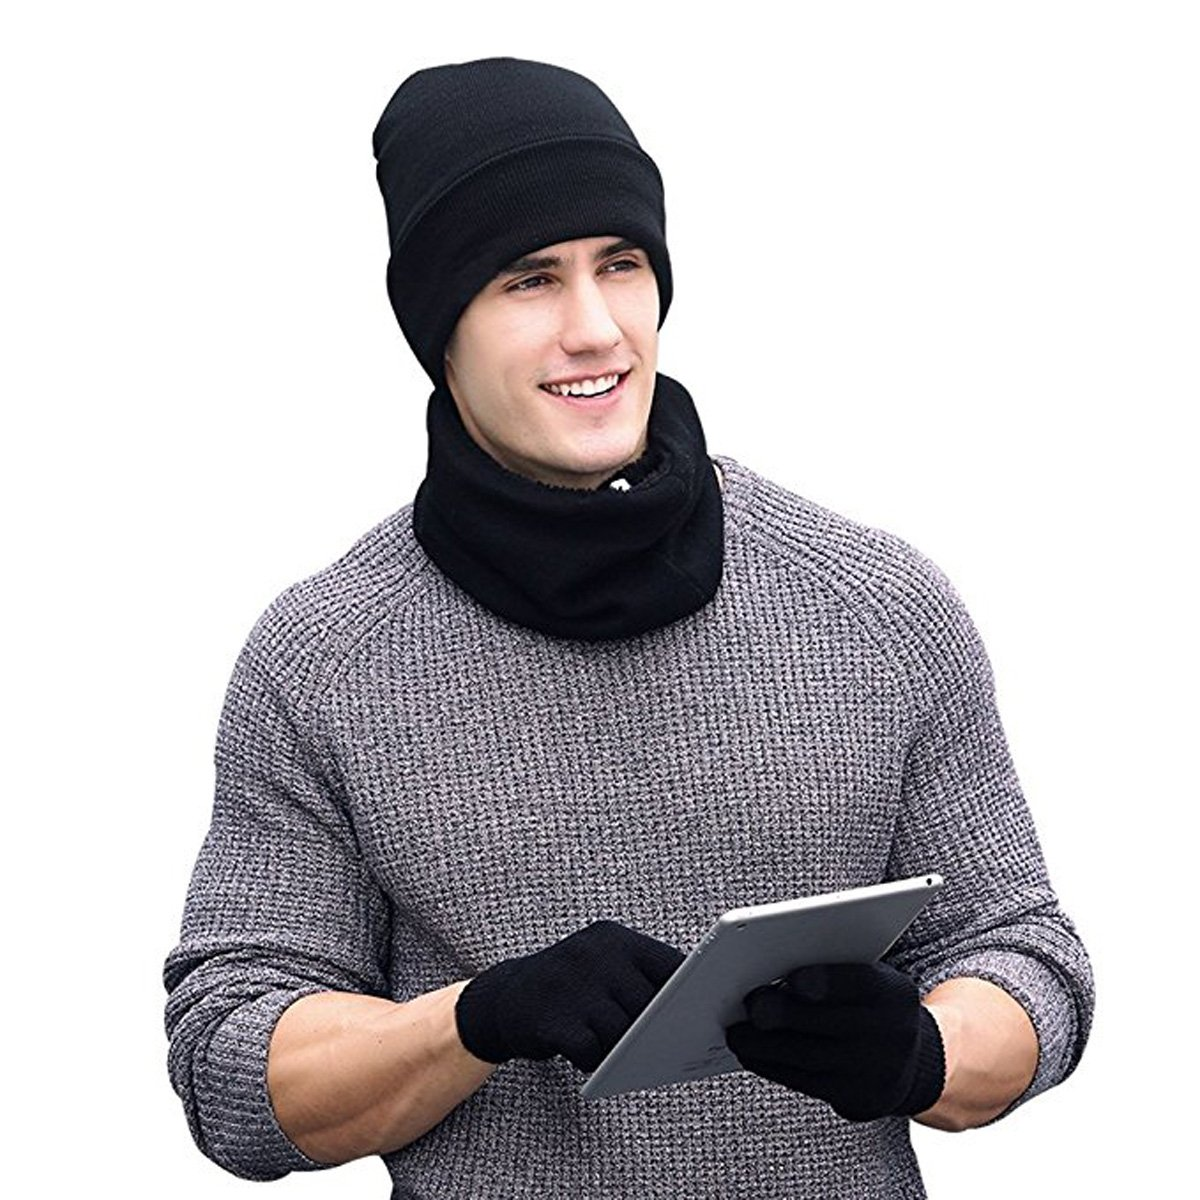 YOUWANG Men 3 PCS Knitted Set Winter Warm Knit Hat + Scarf + Touch Screen Gloves Black